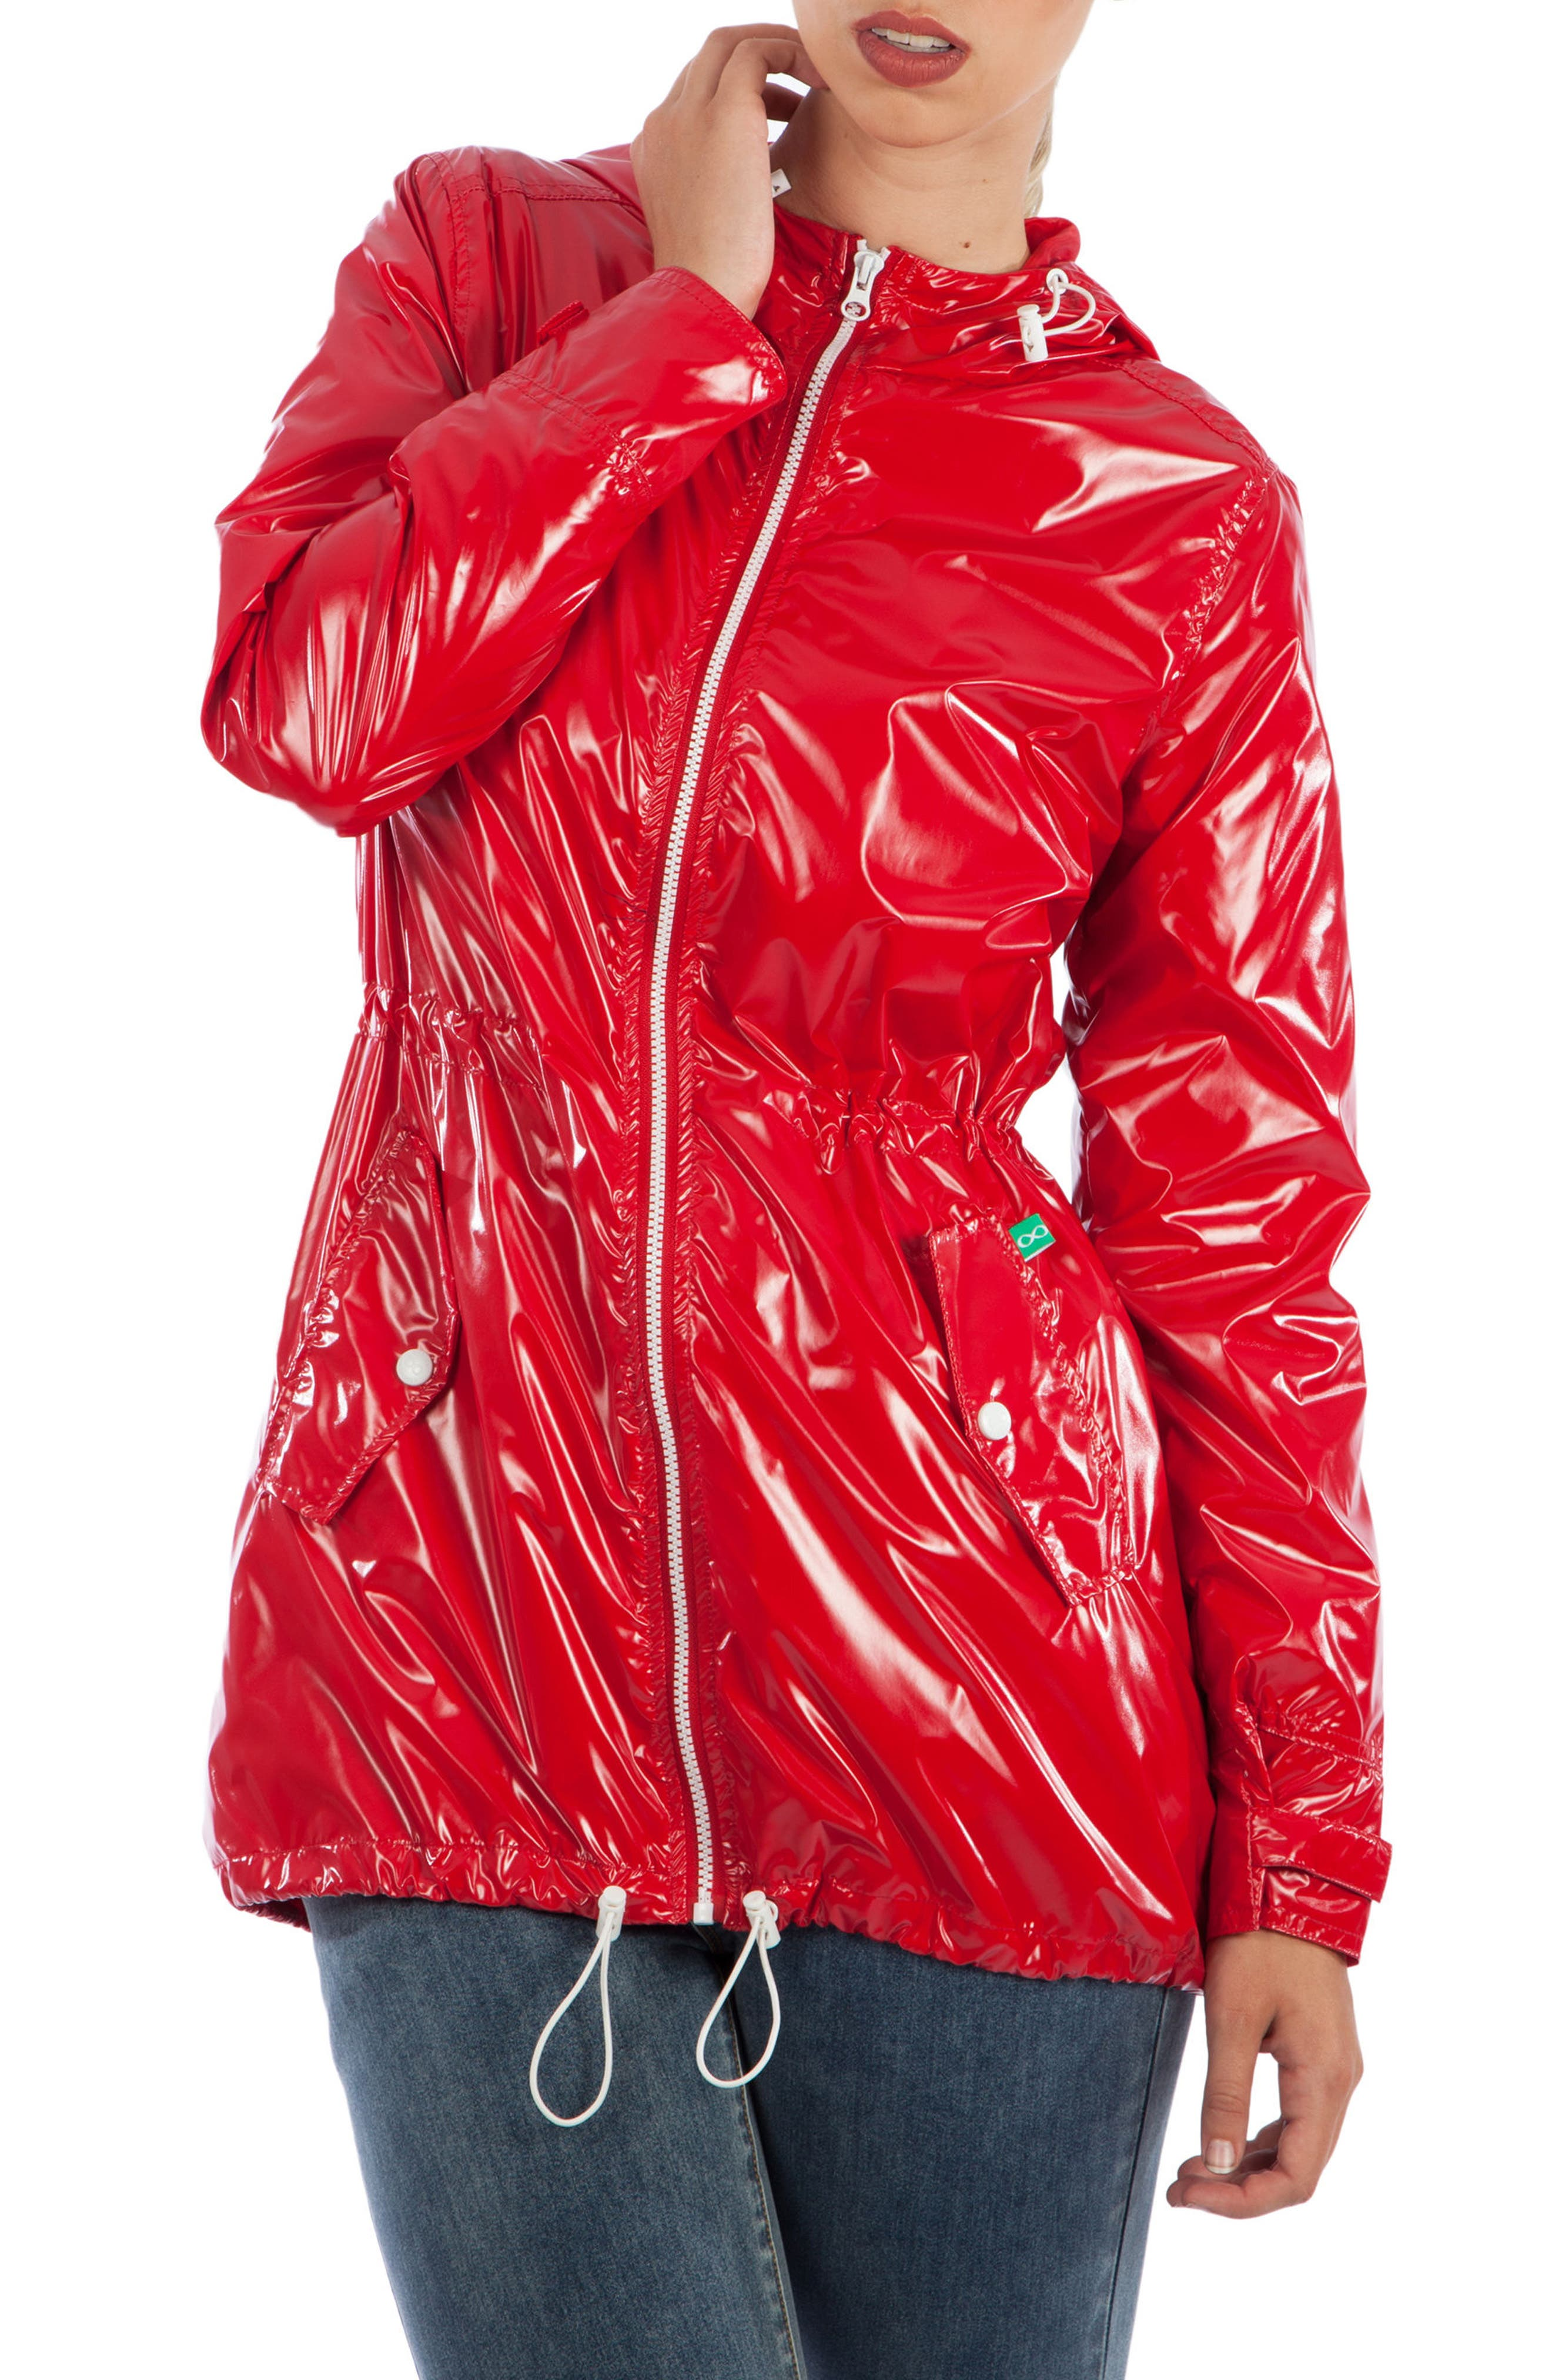 Alternate Image 1 Selected - Modern Eternity Waterproof Convertible Maternity Raincoat